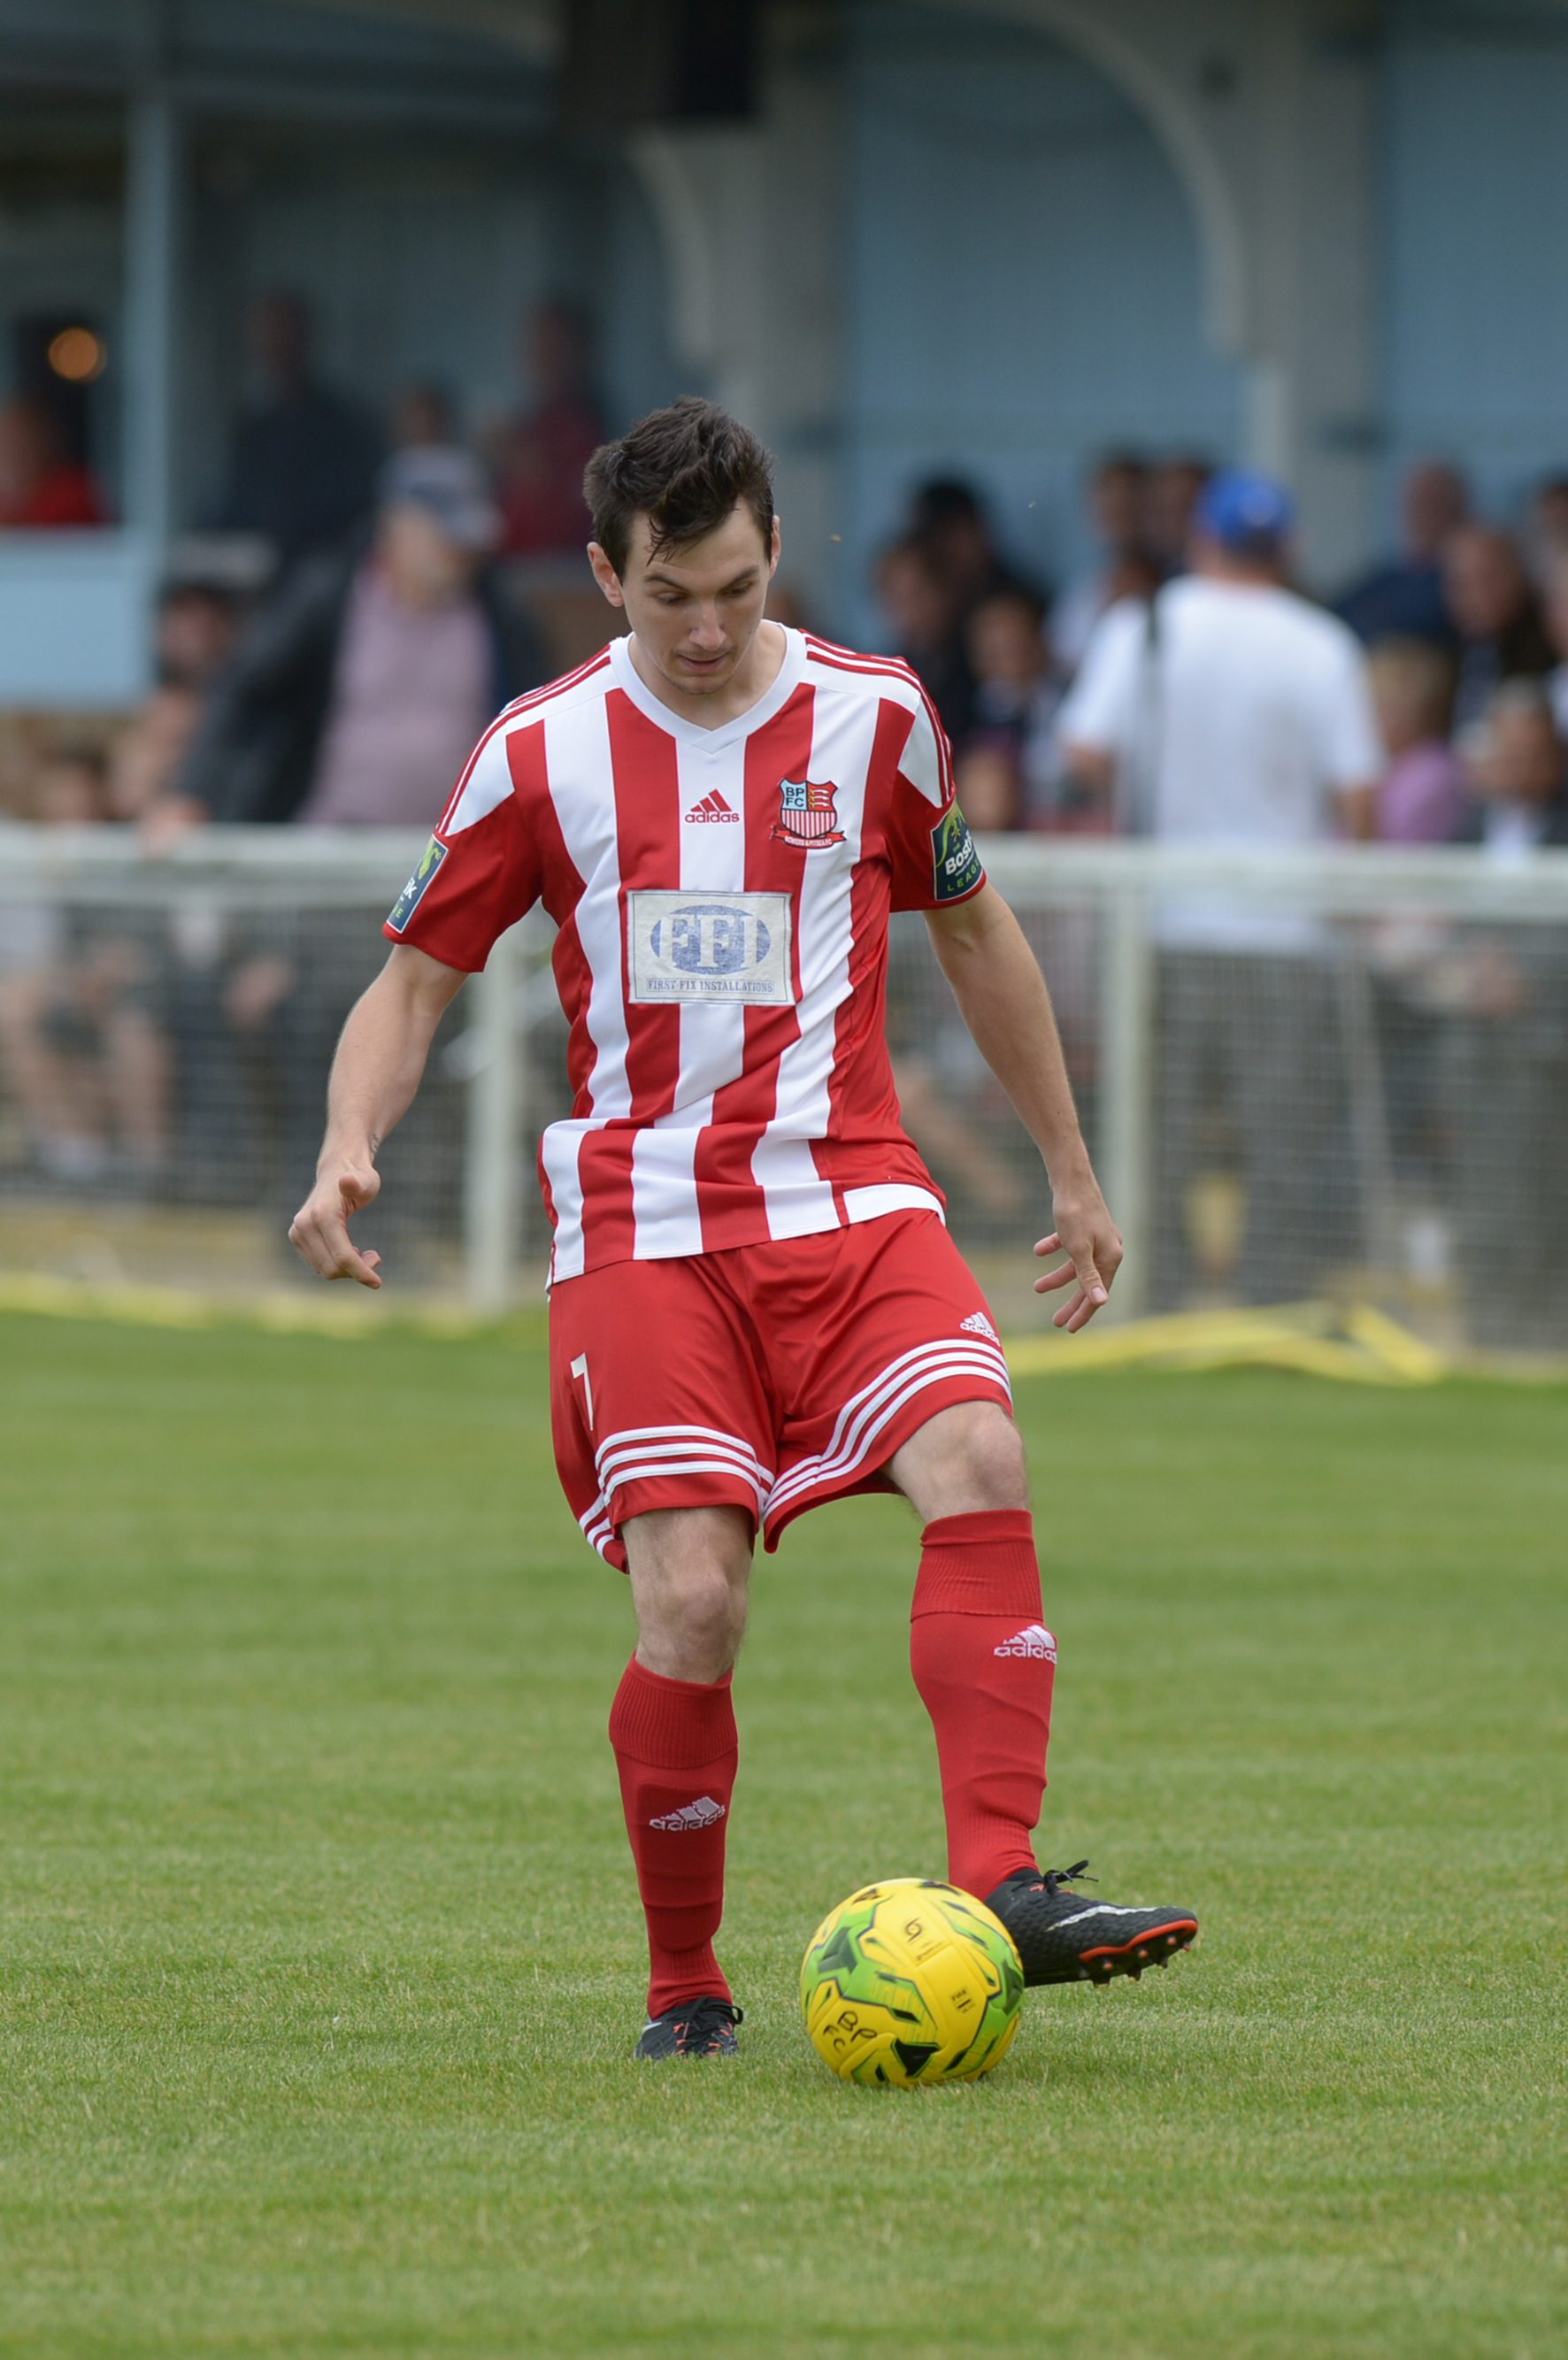 Doubt - Bowers defender James Thomas